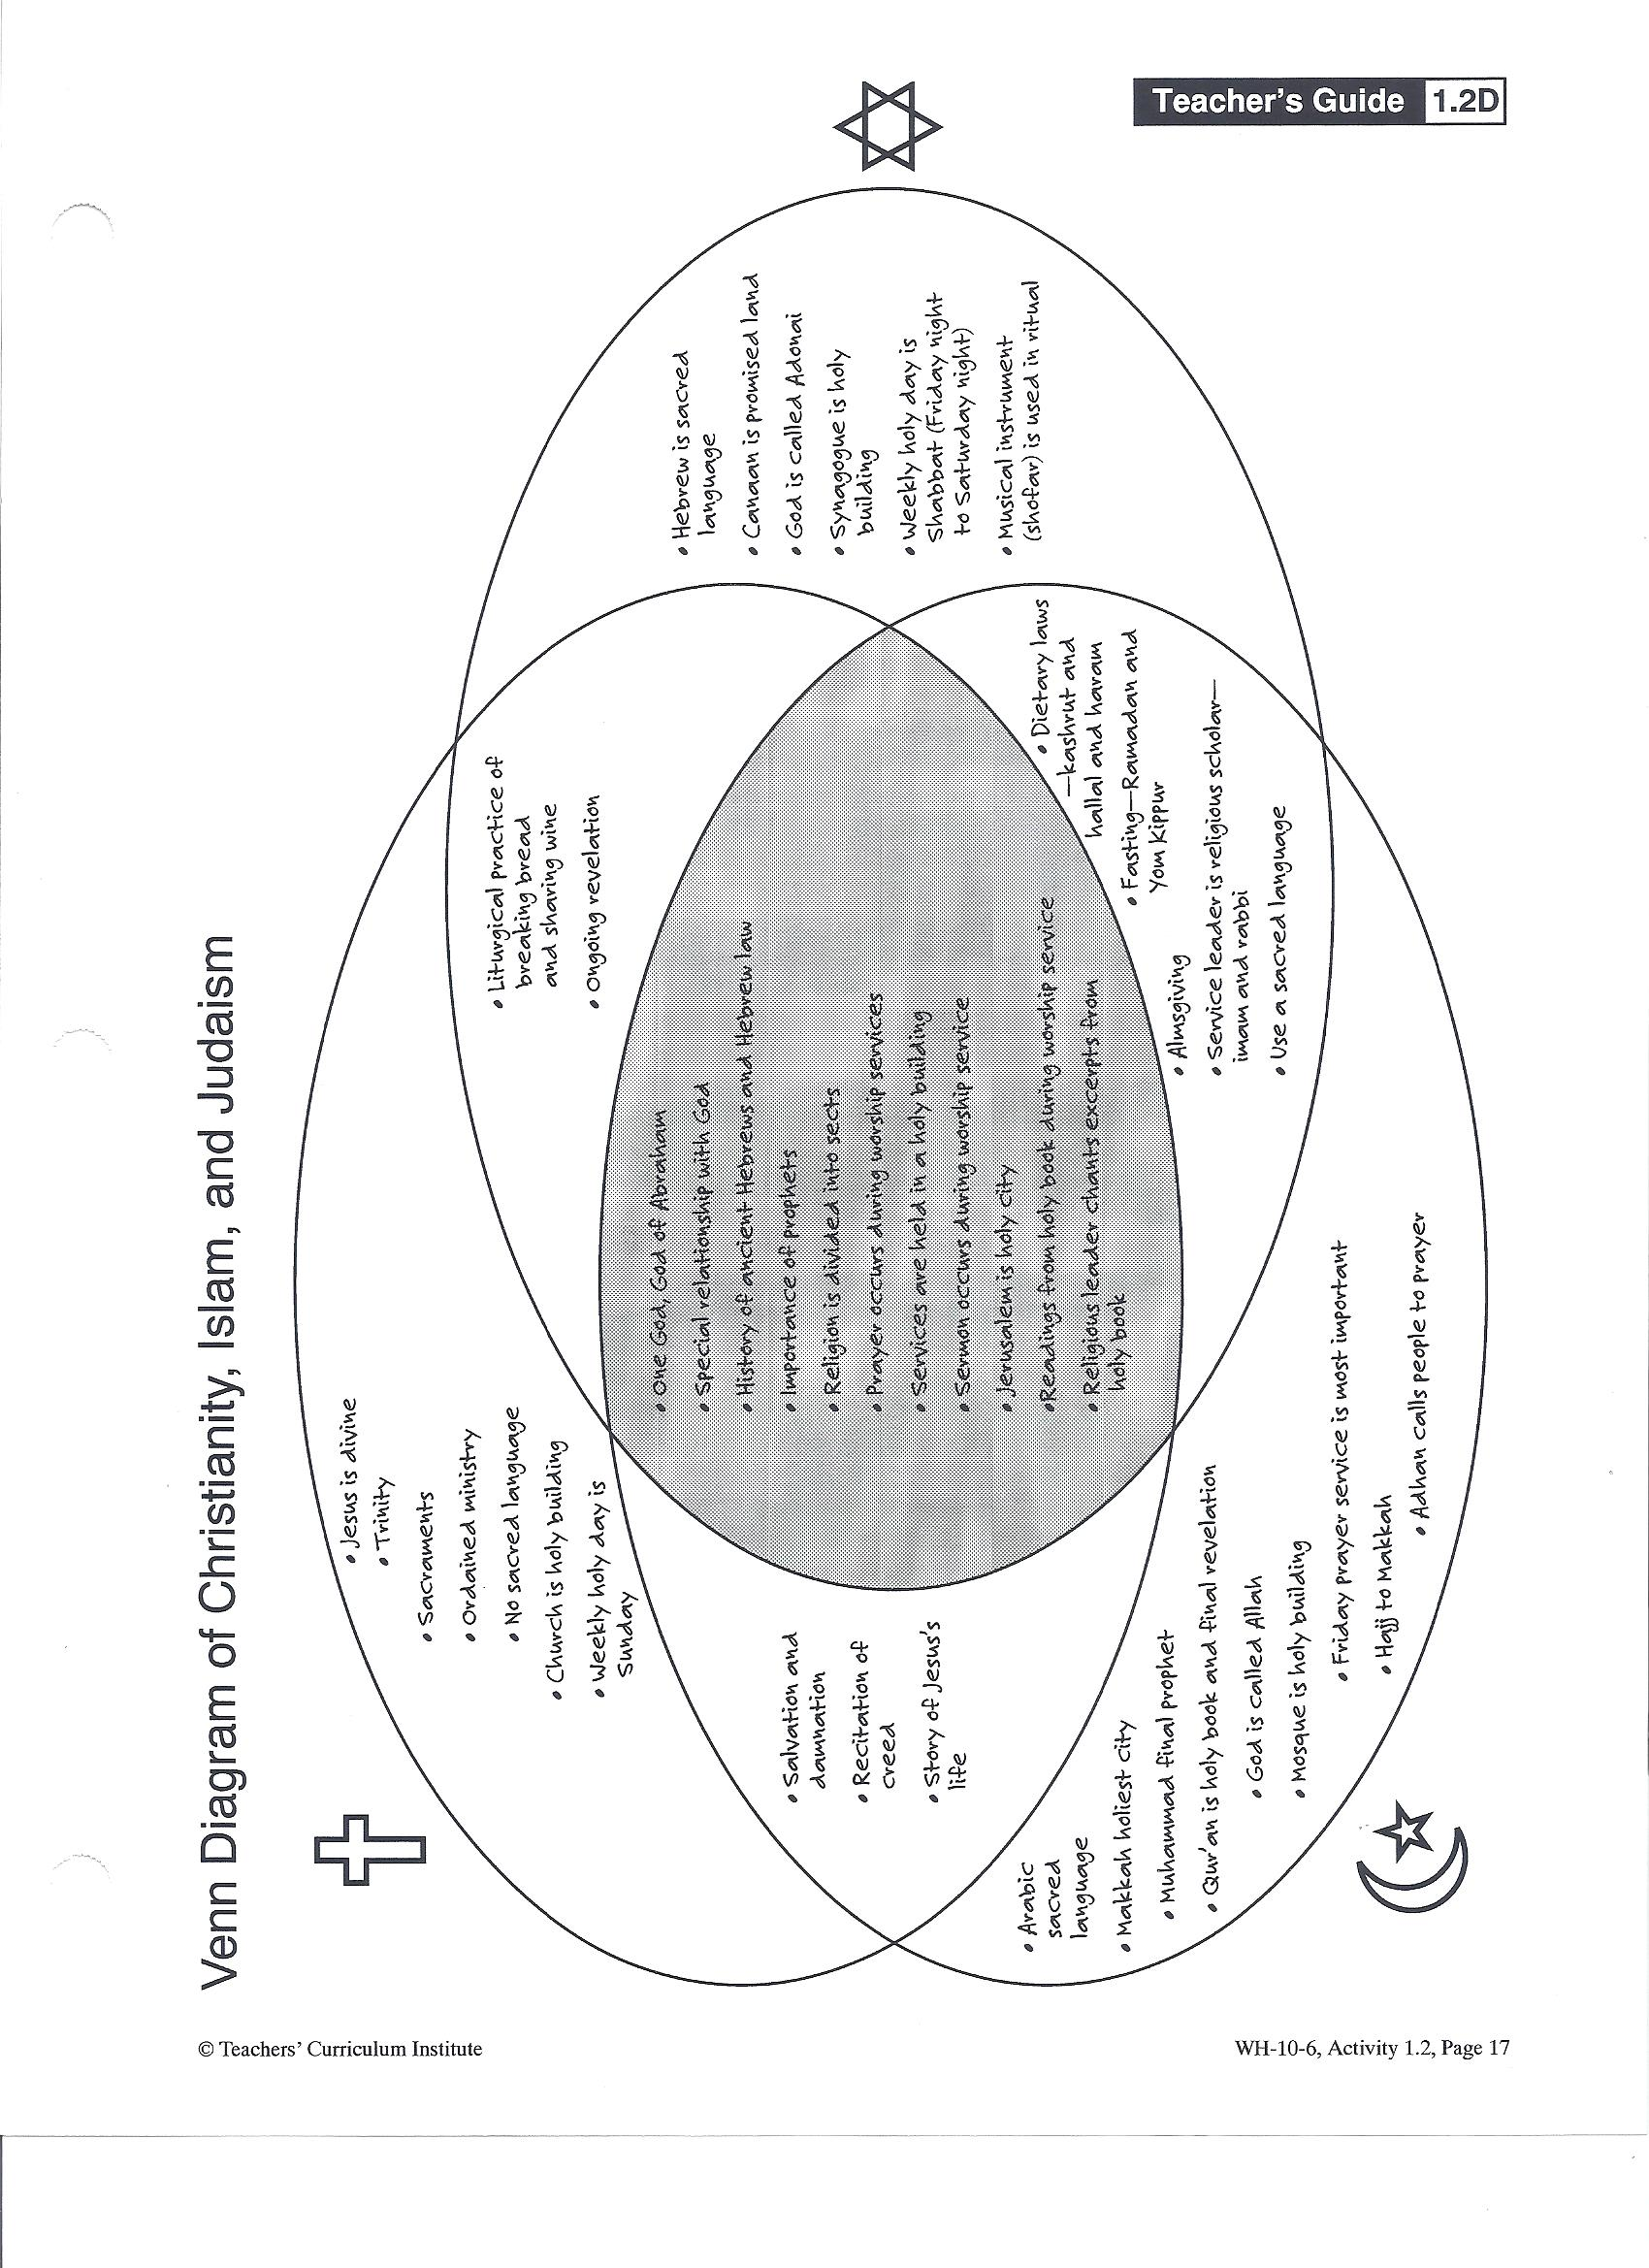 judaism christianity and islam venn diagram asco 7000 wiring geog worksheets